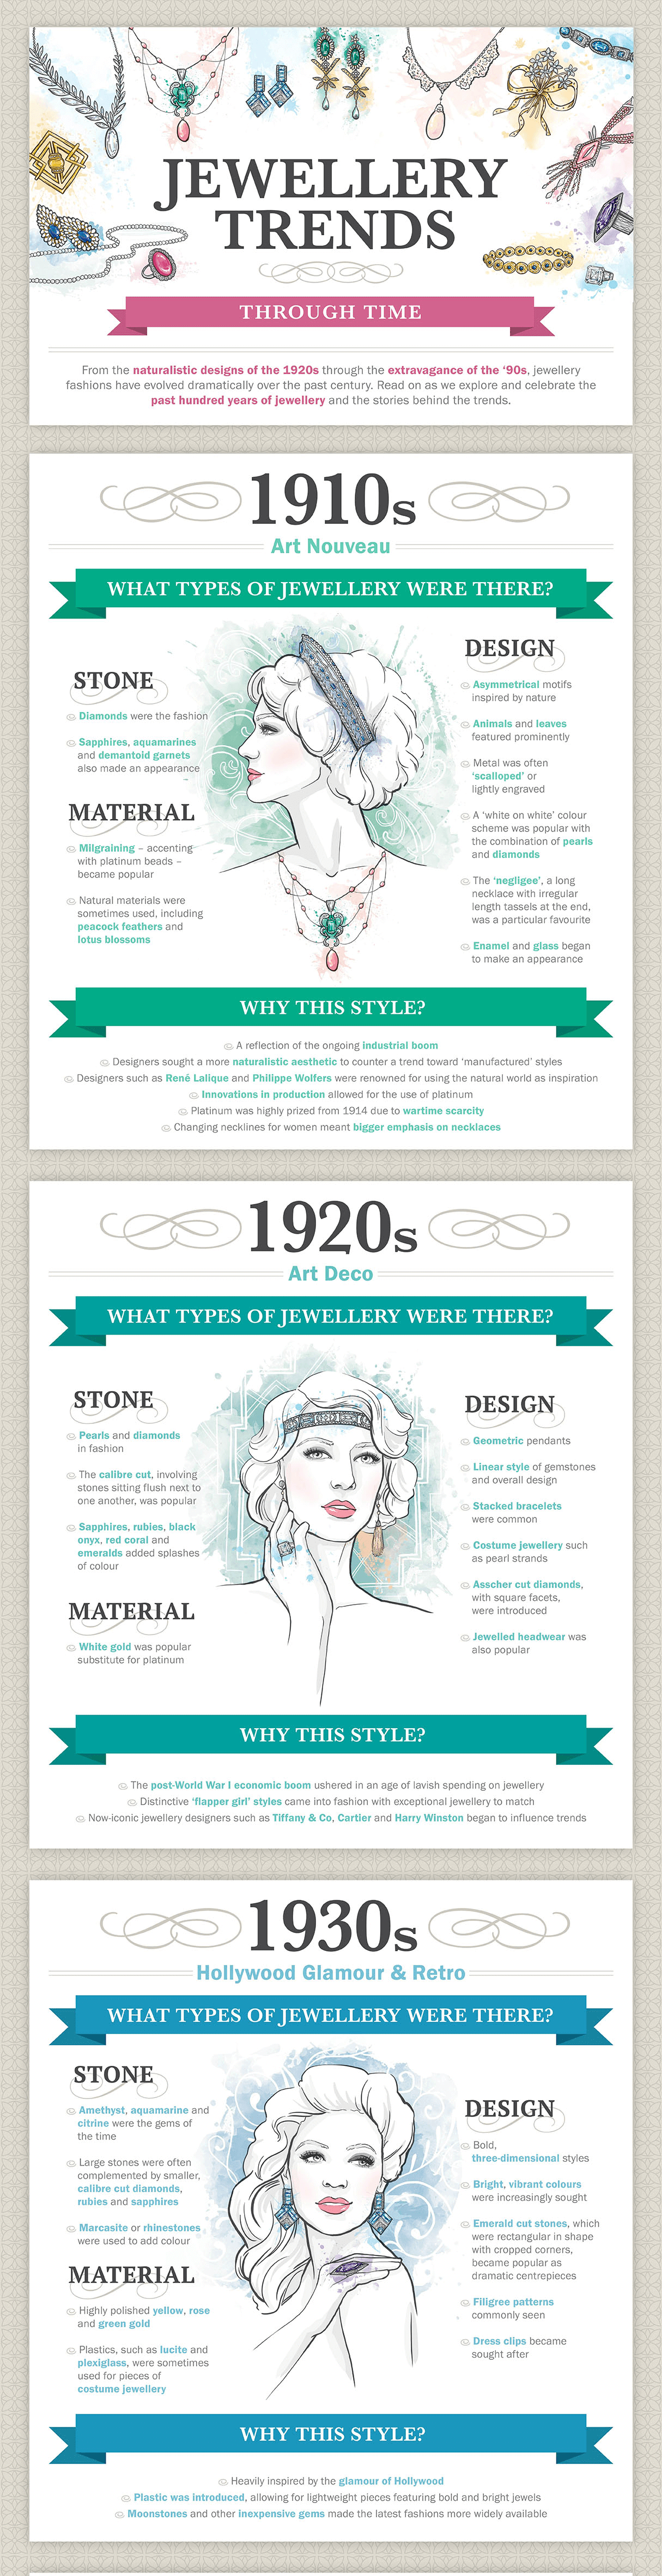 Jewelry Trends Through Time